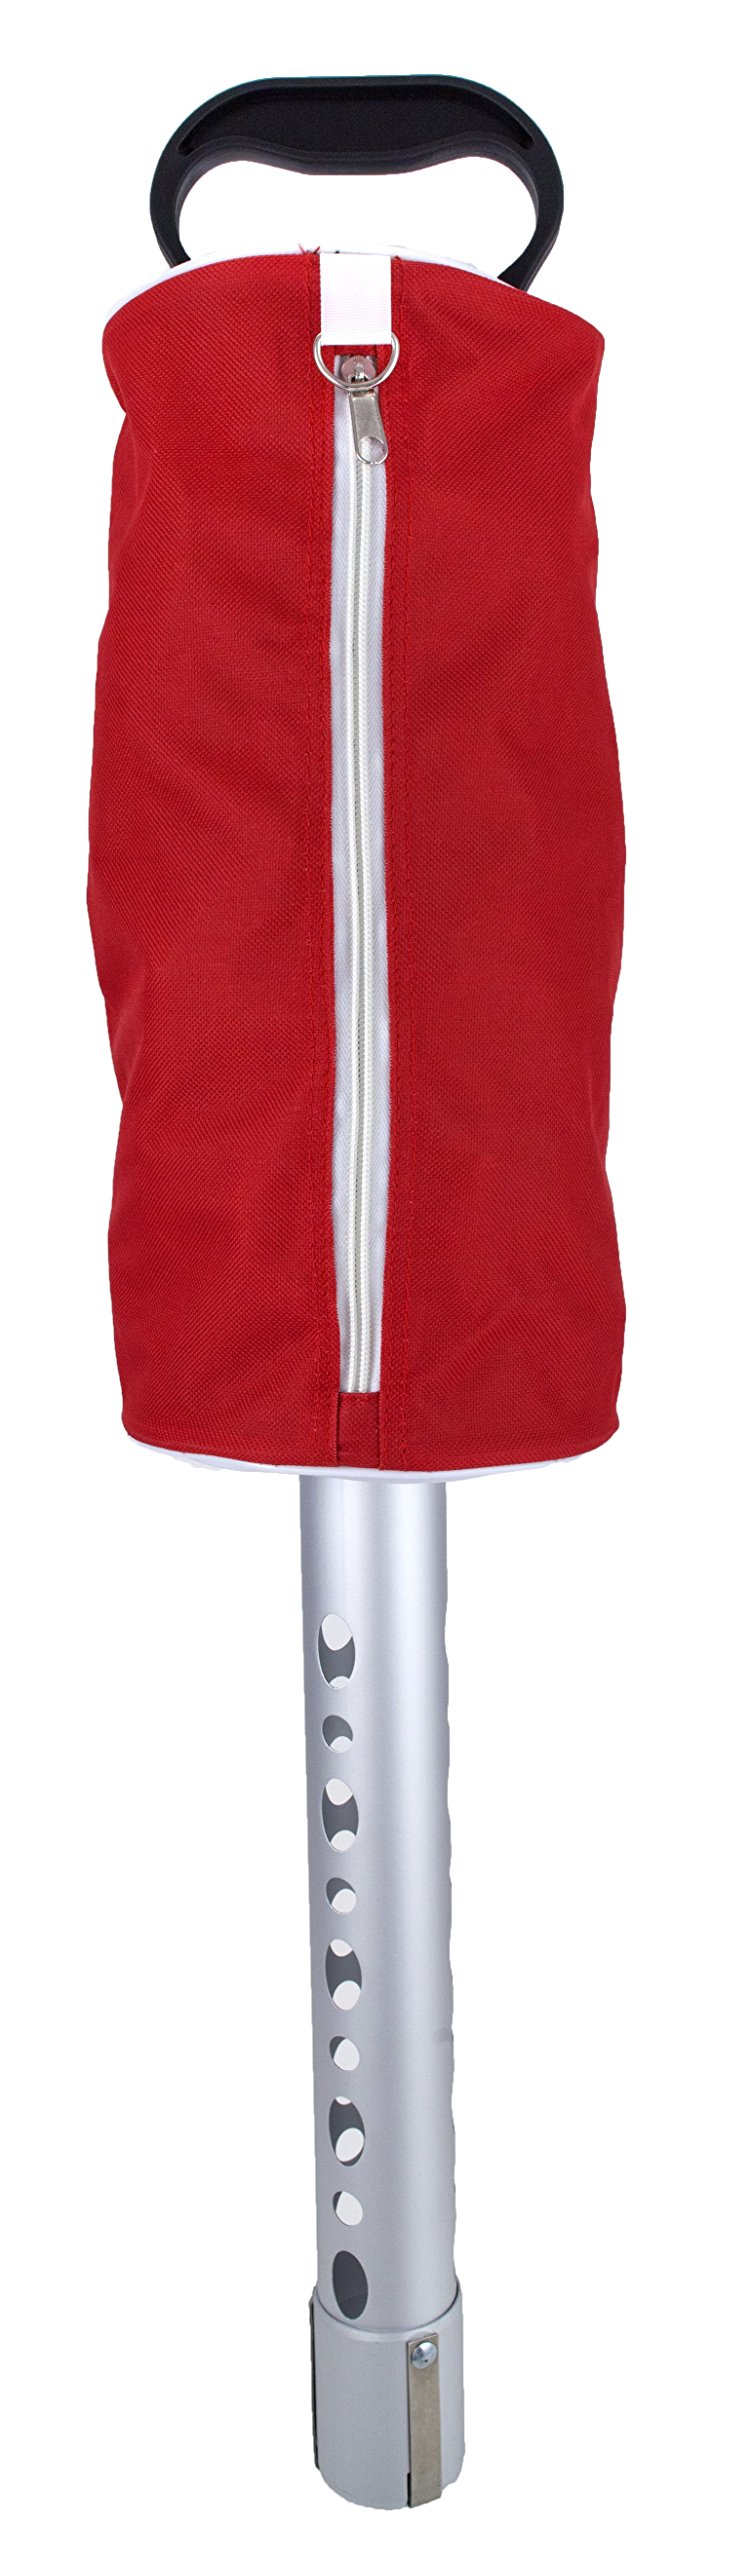 Zip-Up Golf Ball Shag Bag (Red) by ProActive Sports